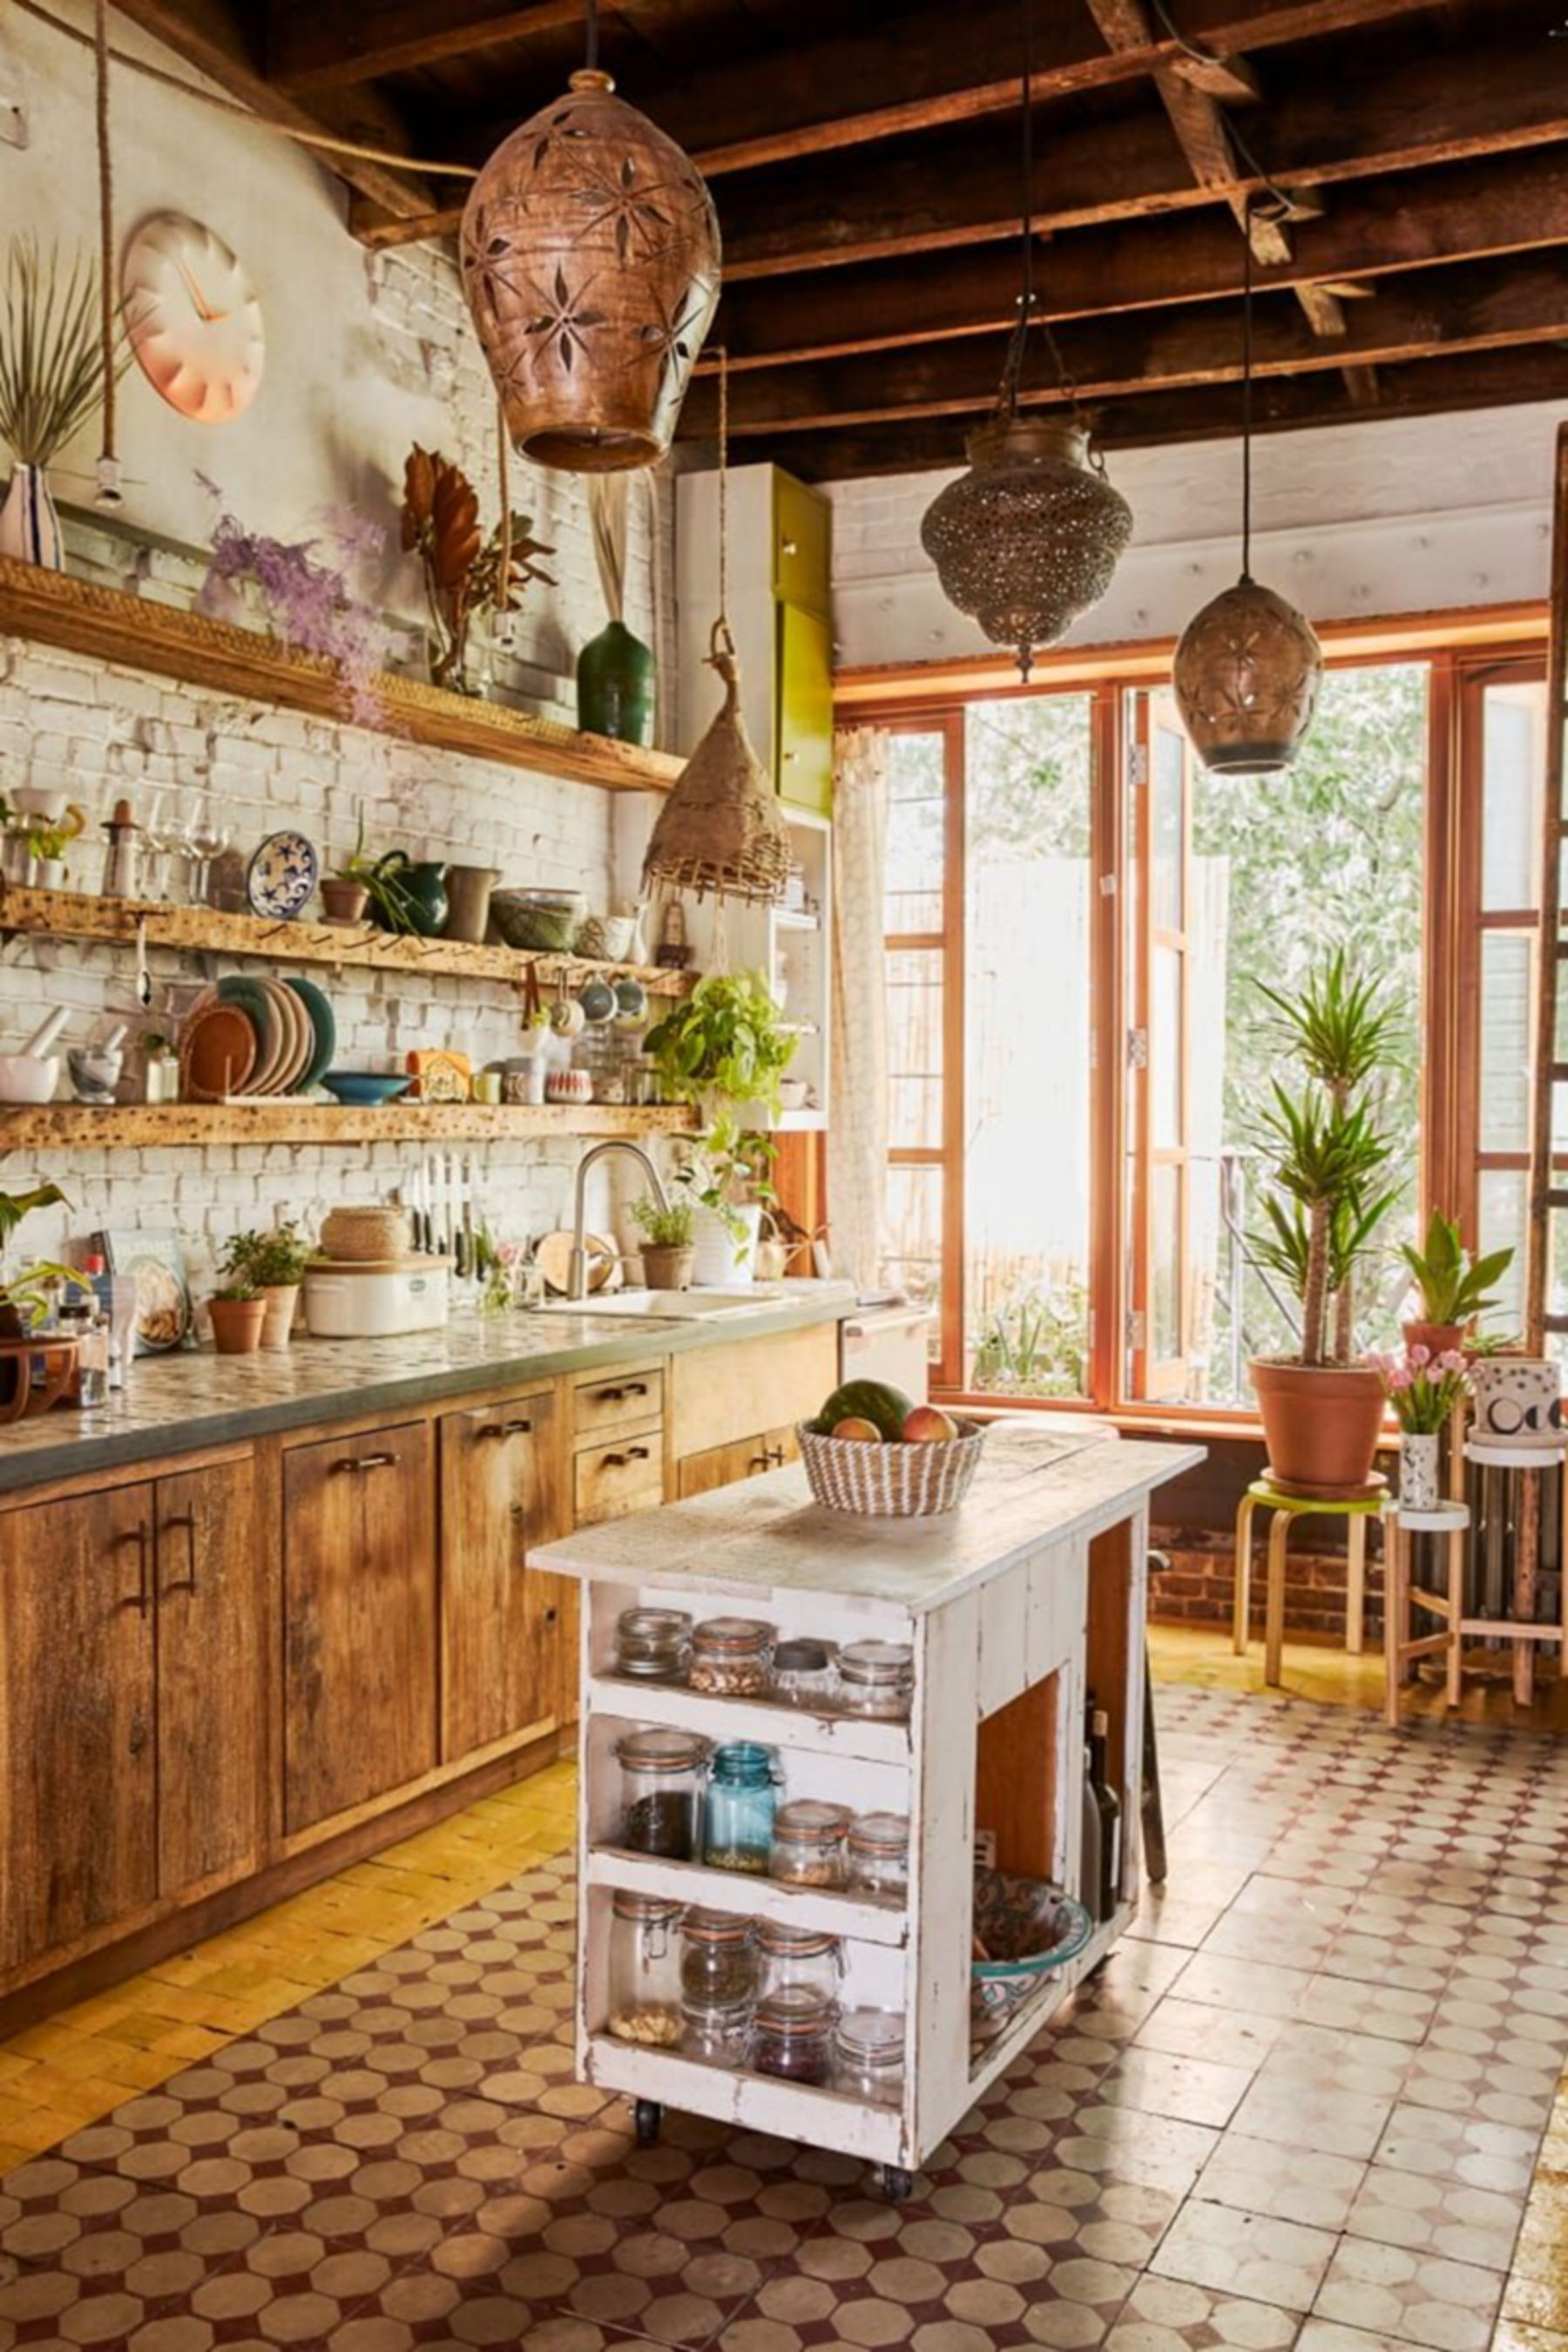 Top 8 Incredible Bohemian Kitchen Design Ideas For Your Kitchen Beautiful - Interior design kitchen, Kitchen inspirations, Kitchen interior, Home decor kitchen, Rustic kitchen, Kitchen style - Most of us are familiar with the term bohemian  Even so, maybe there are still some who don't know for sure what exactly is bohemian  The word Bohemian has been known for a long time  This te…